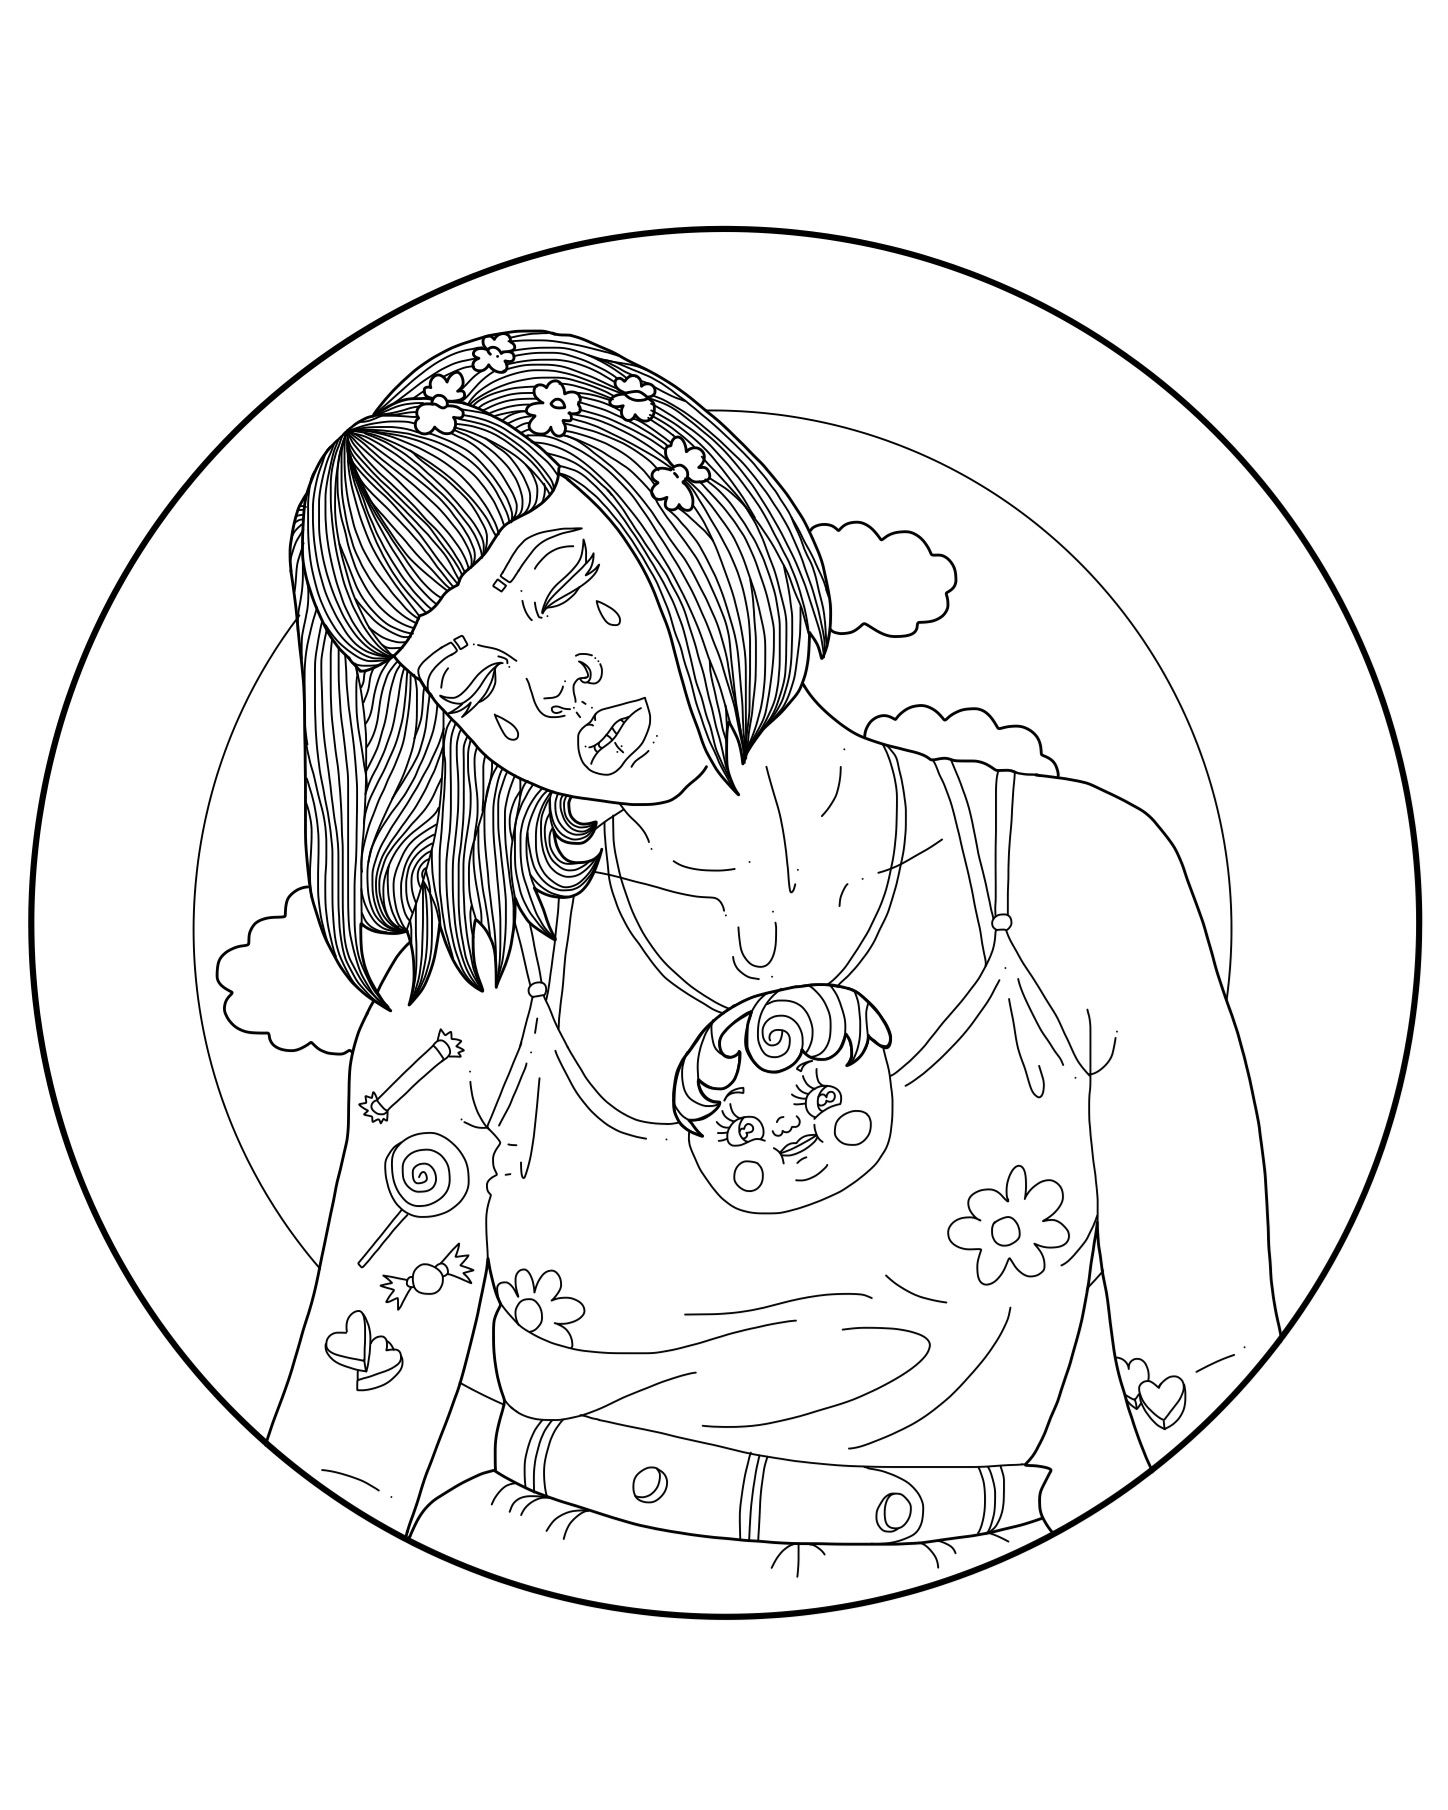 Melanie Martinez Coloring Pages Coloring Pages Melanie Martinez Coloring Book Millie Marotta Coloring Book Coloring Pages